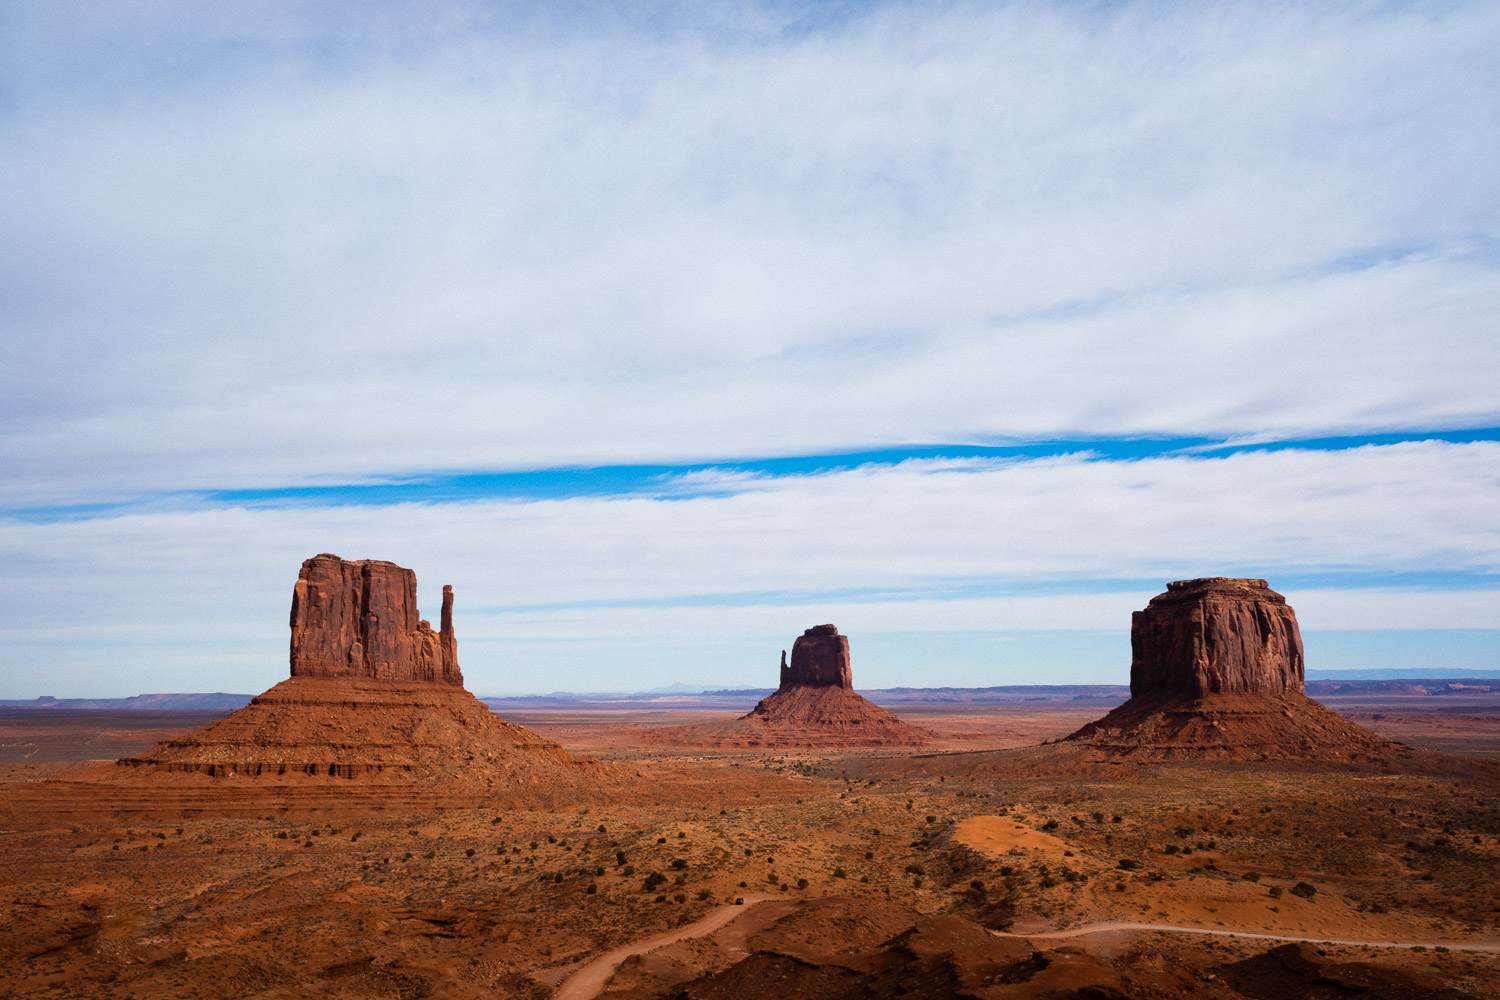 Monument Valley, first view you see upon entrance. The three most famous mesas, or buttes technically which are just small mesas—West Mitten Butte, East Mitten Butte, and Merrick Butte. It only get betters from here.